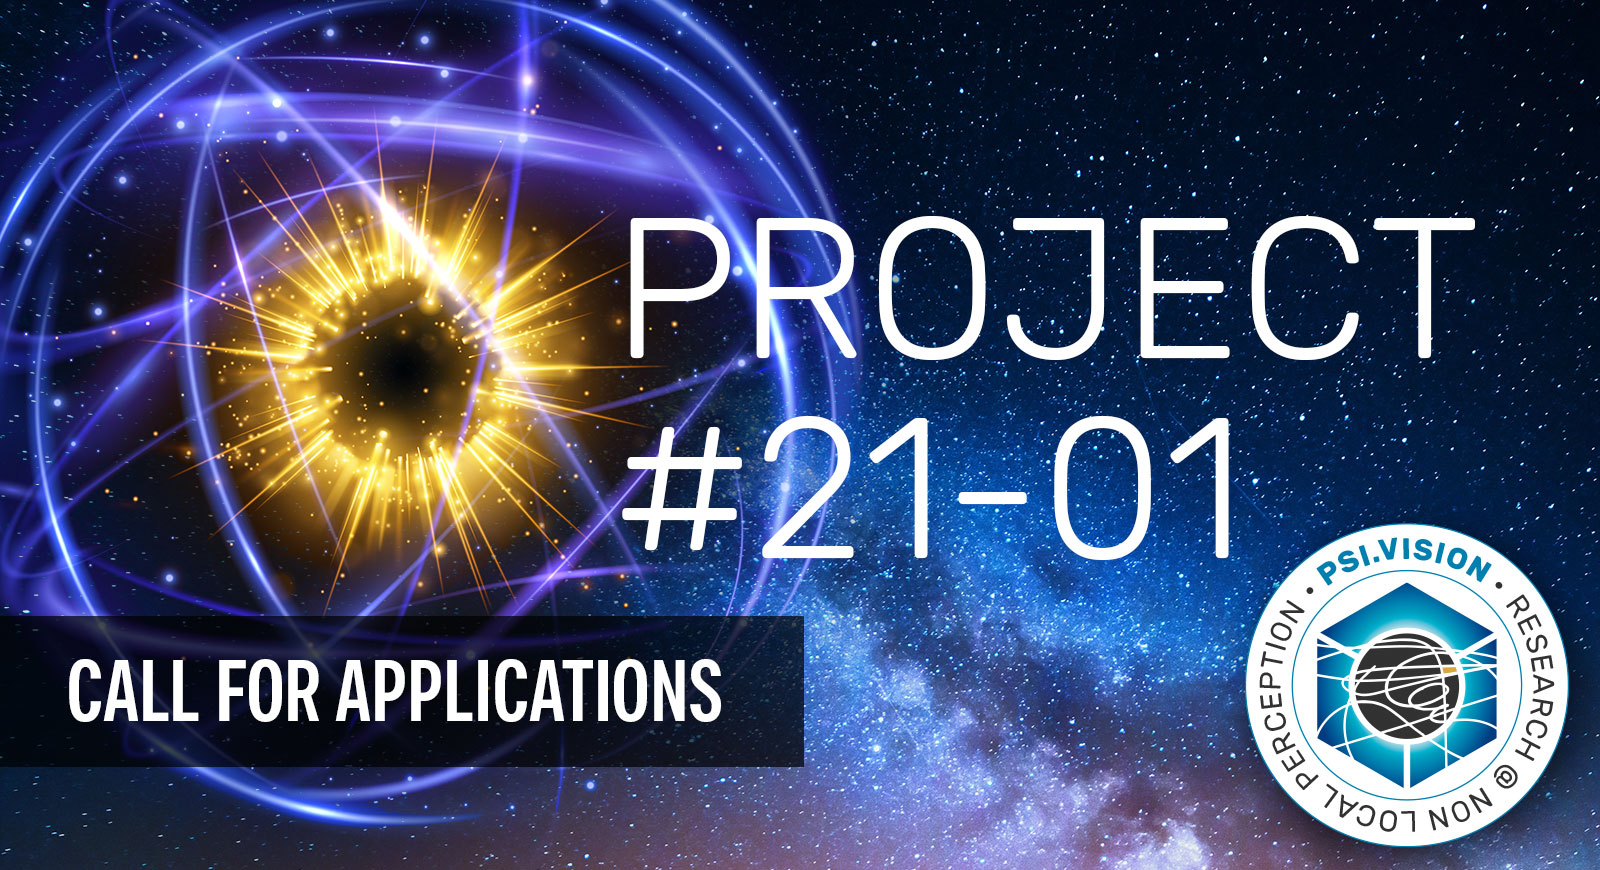 PSI.vision | call for applications project #21-01